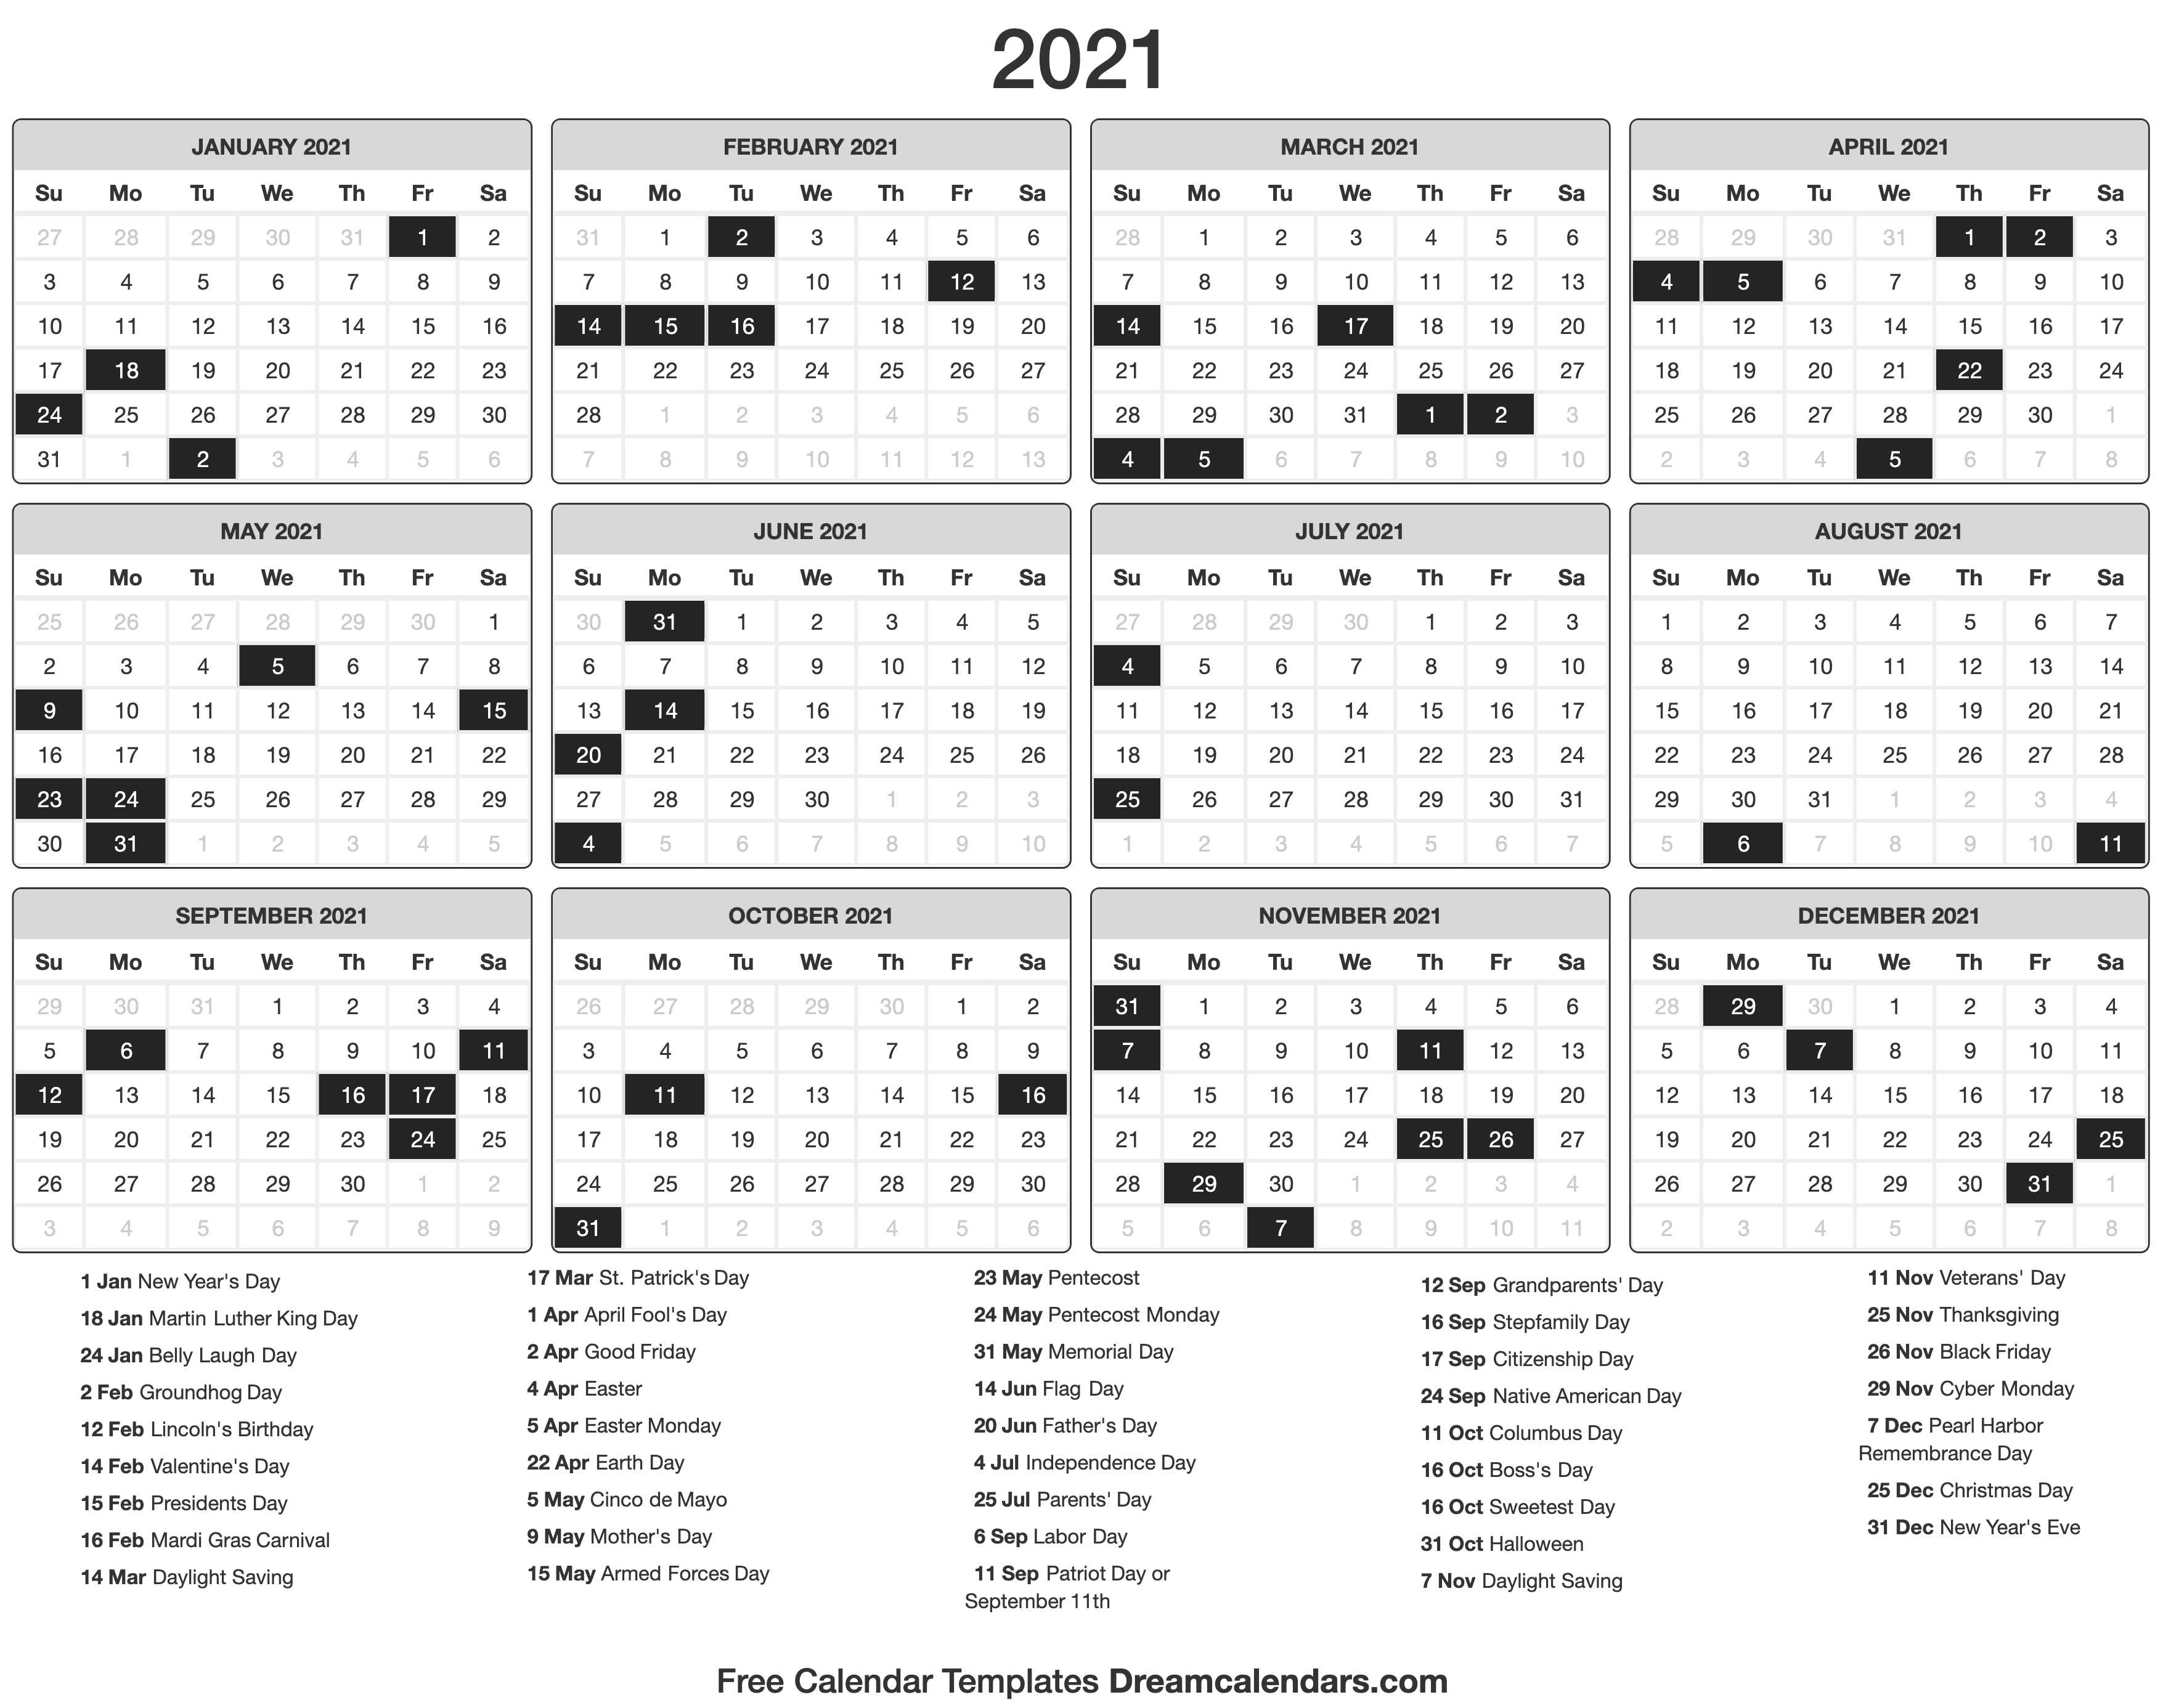 After all, it's just another way to show some excitement for the end of 2020. 2021 Calendar